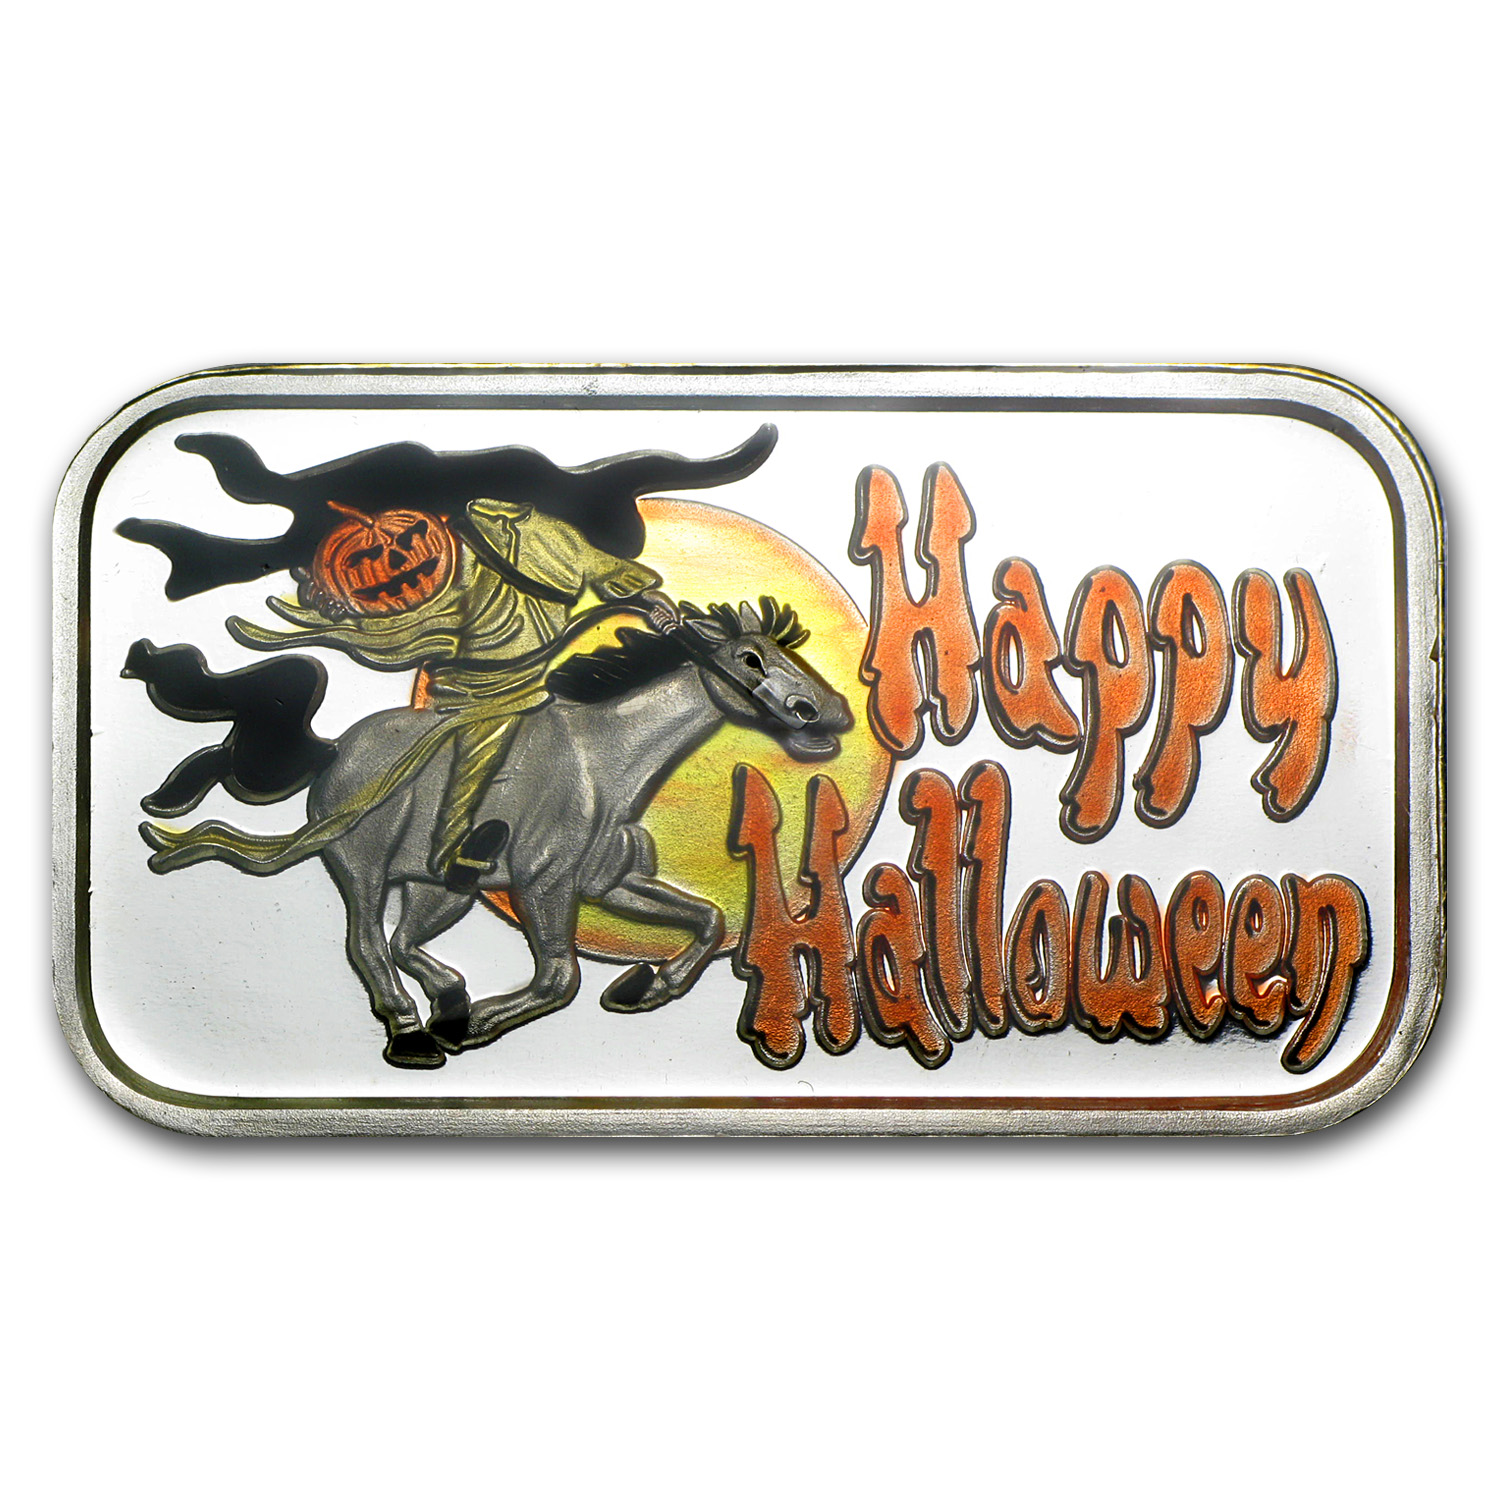 1 oz Silver Bar - Headless Horseman (Enameled, w/Pouch & Capsule)